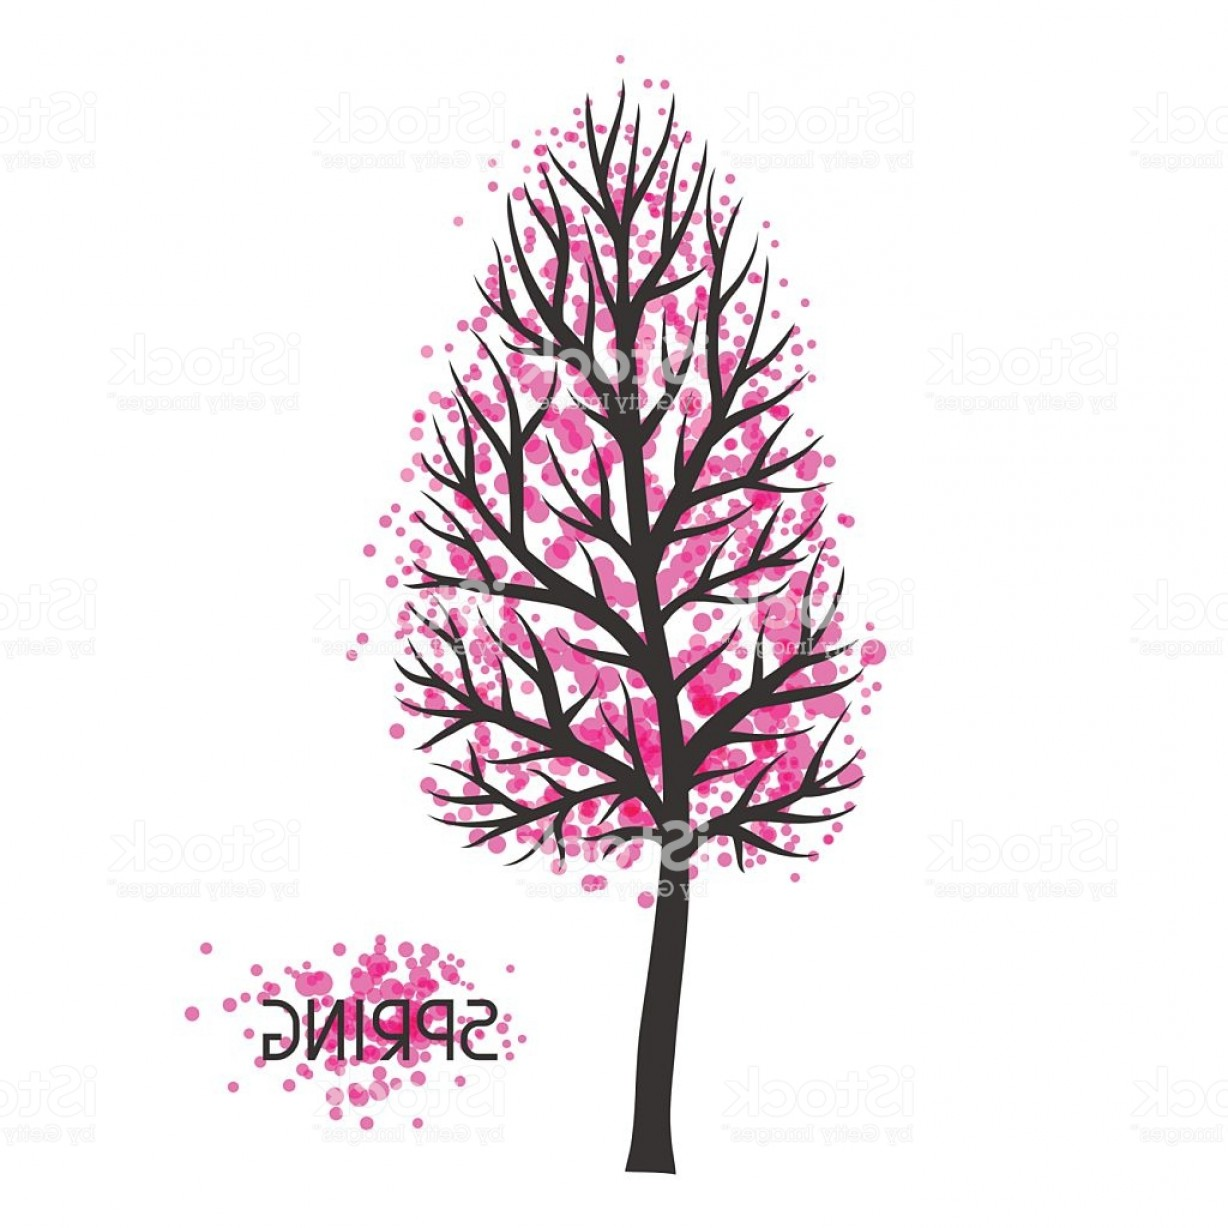 Spring Vector Silhouette: Background With Spring Tree Illustration Of Silhouette And Abstract Spots Gm